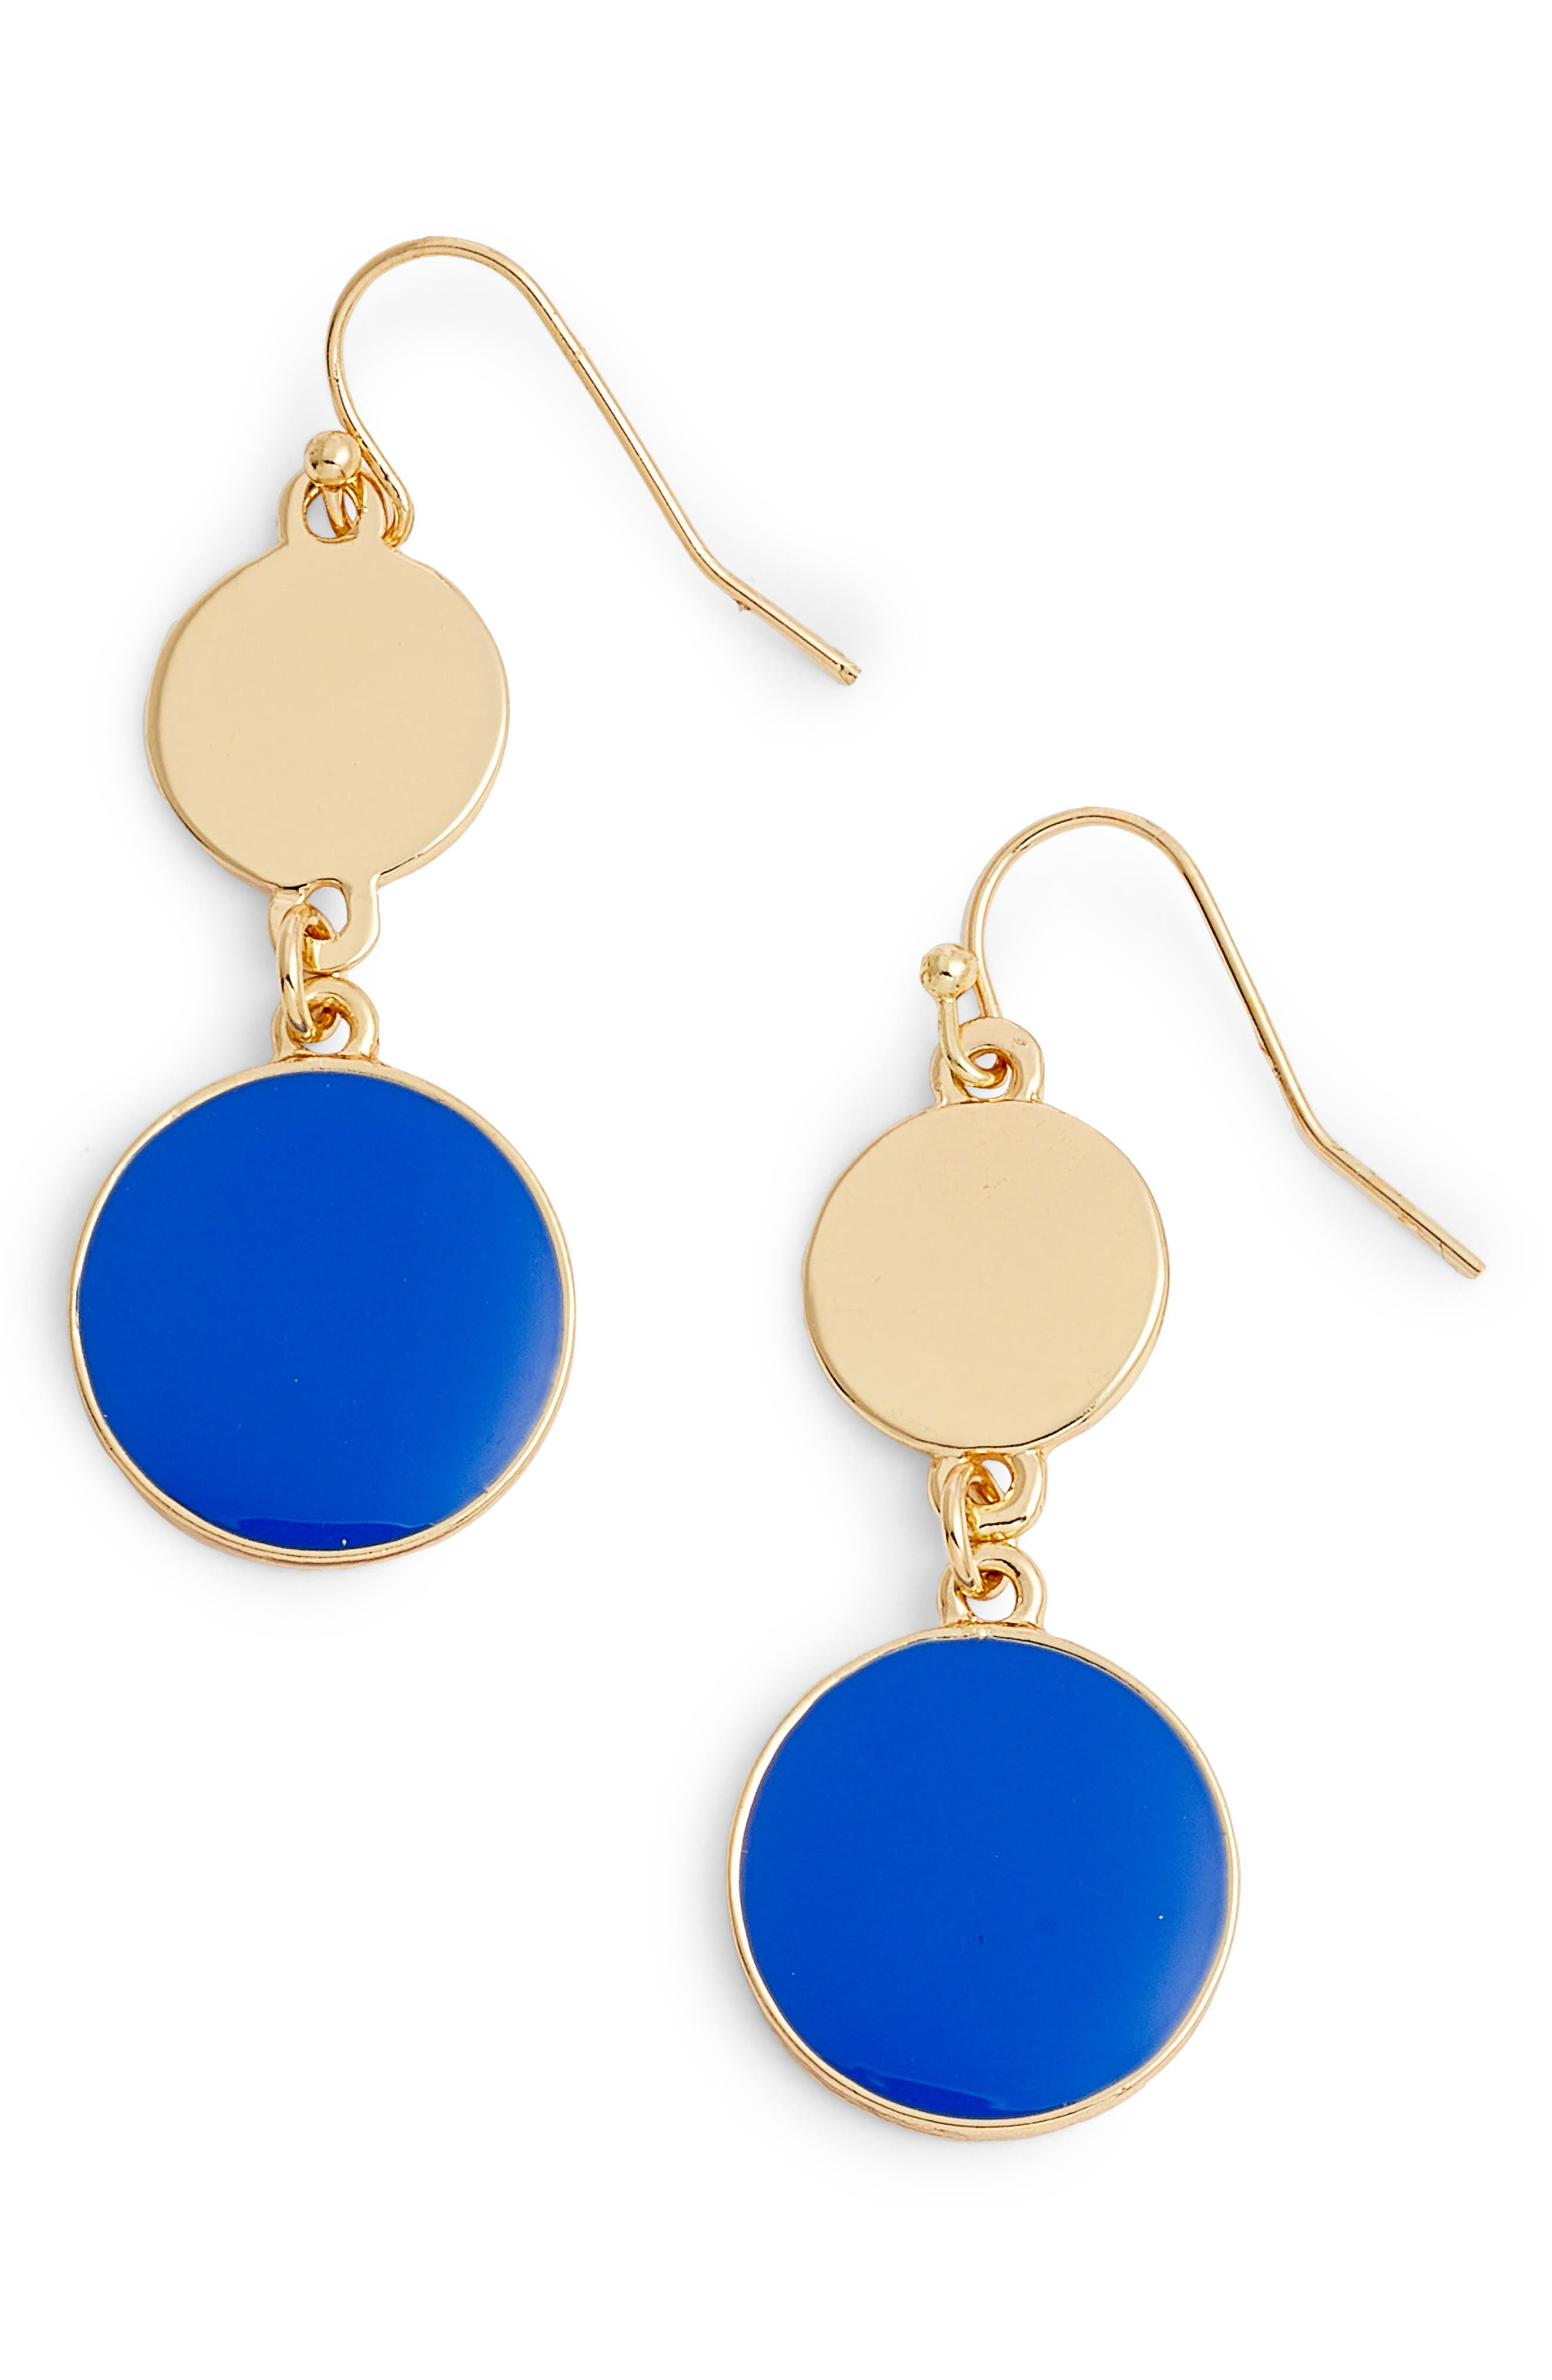 Double Disc Drop Earrings,                         Main,                         color, Blue- Gold